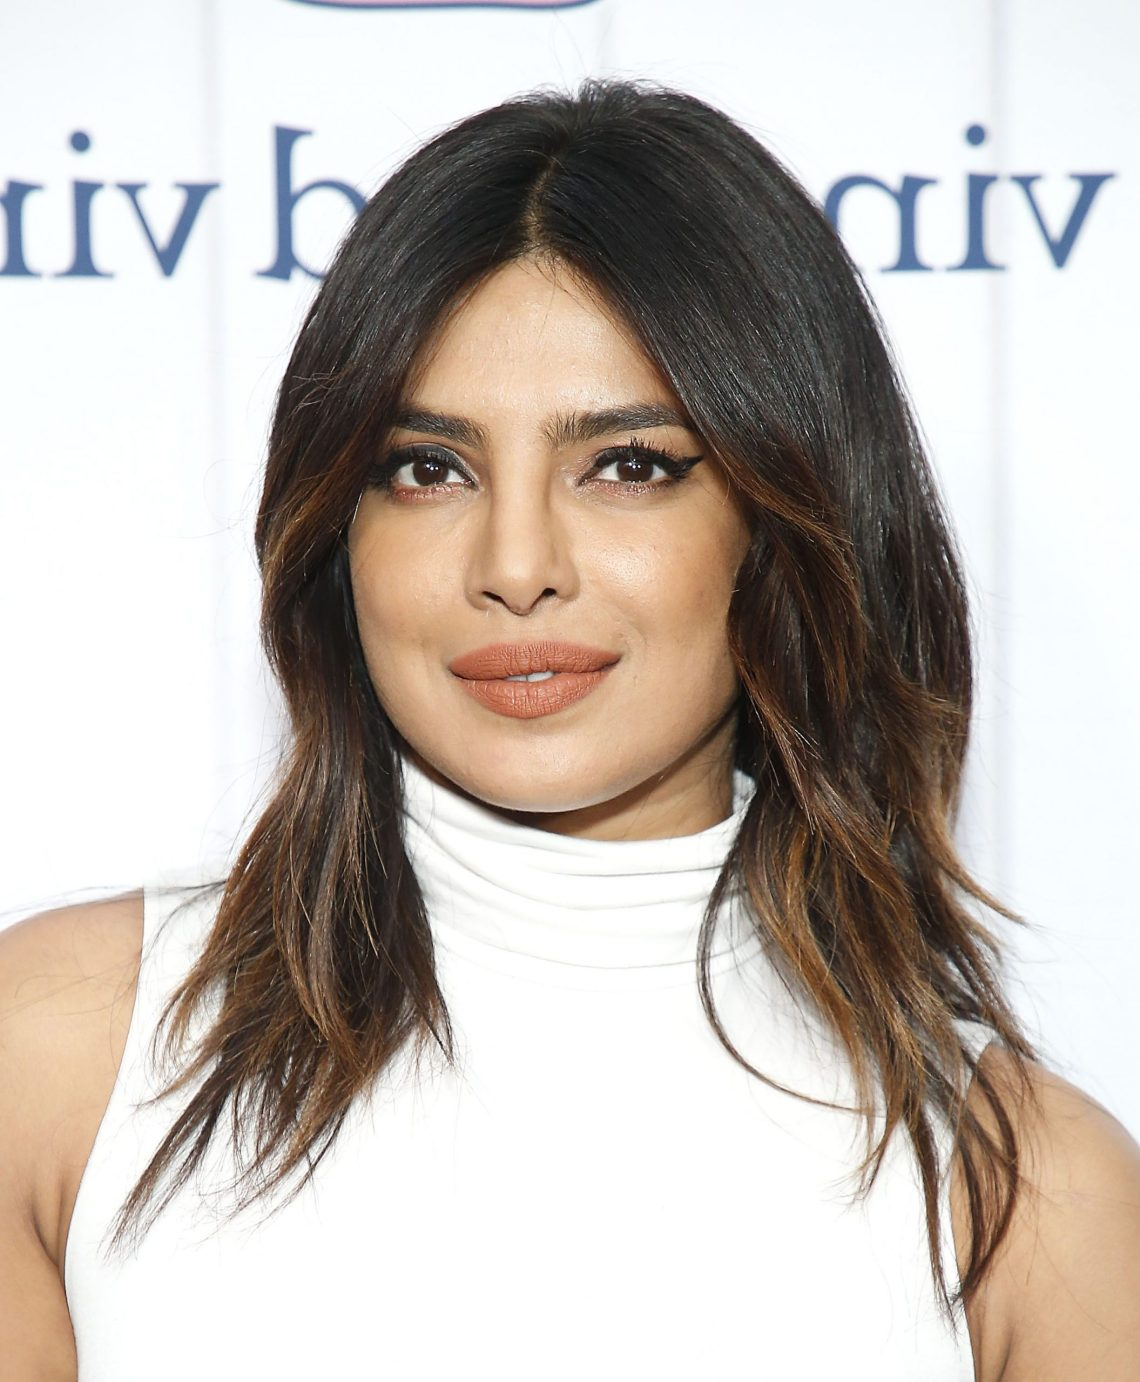 90 Best Medium Length Hairstyles, Haircuts, And Hair Ideas 30+ Amazing Round Face Layered Low Maintenance Medium Length Hairstyles